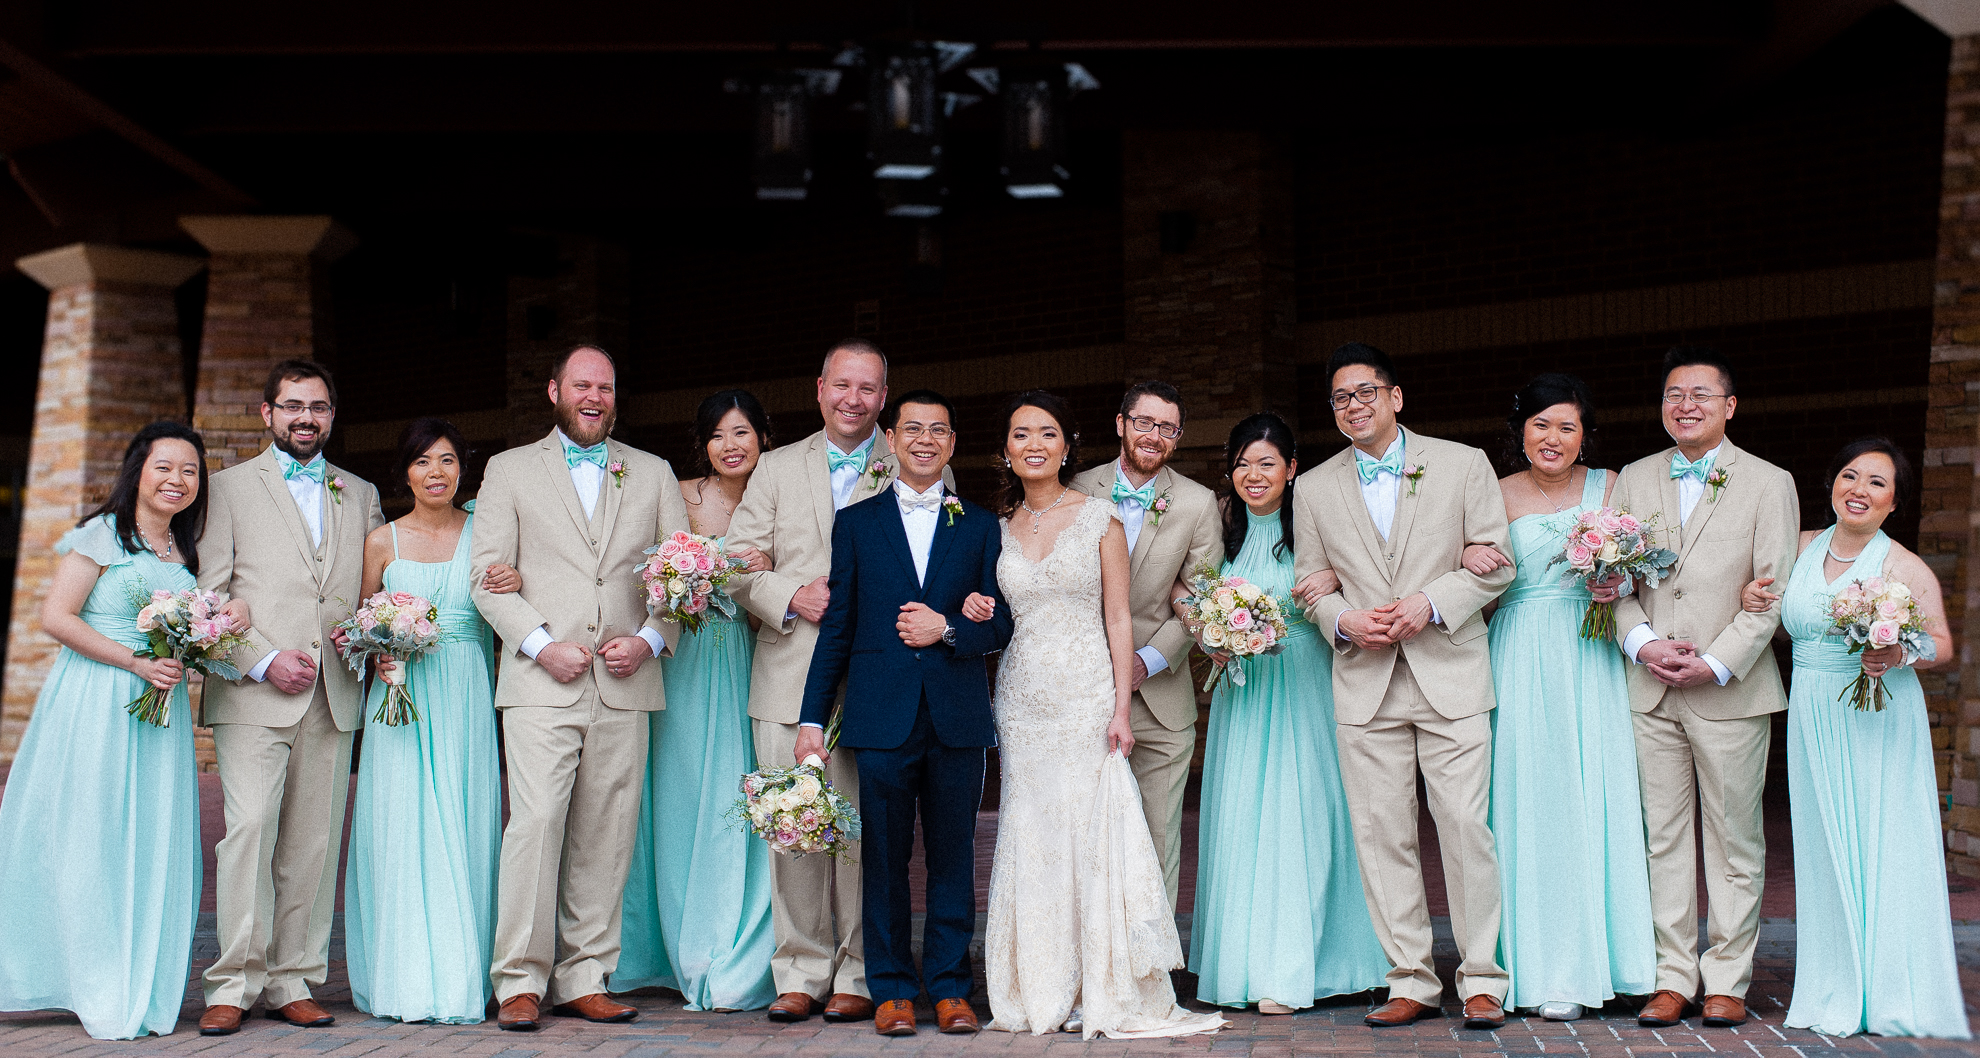 meadowview resort wedding party picture